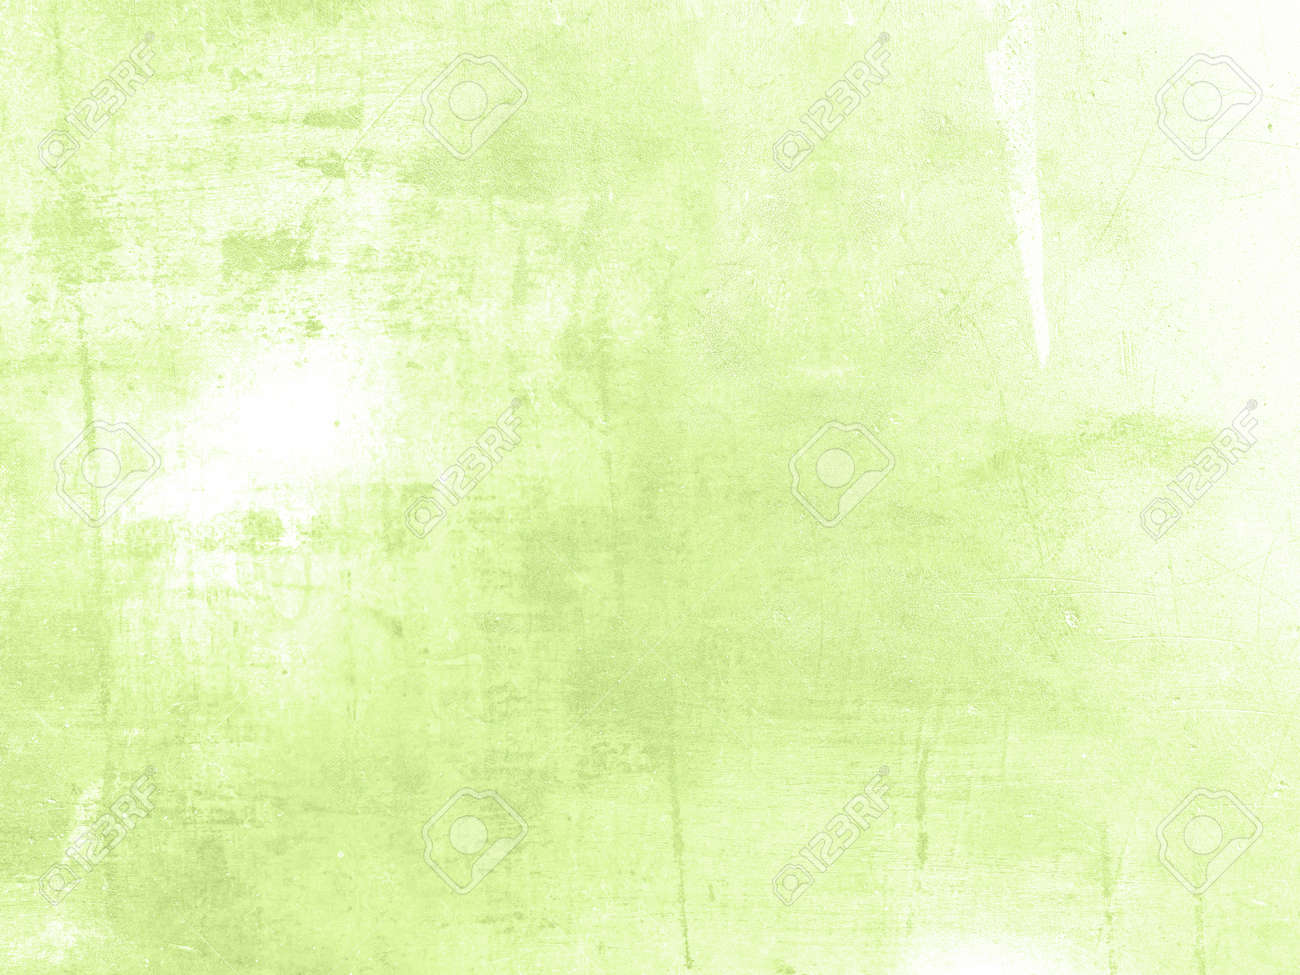 Light Green Background Abstract Spring Design In Soft Pale